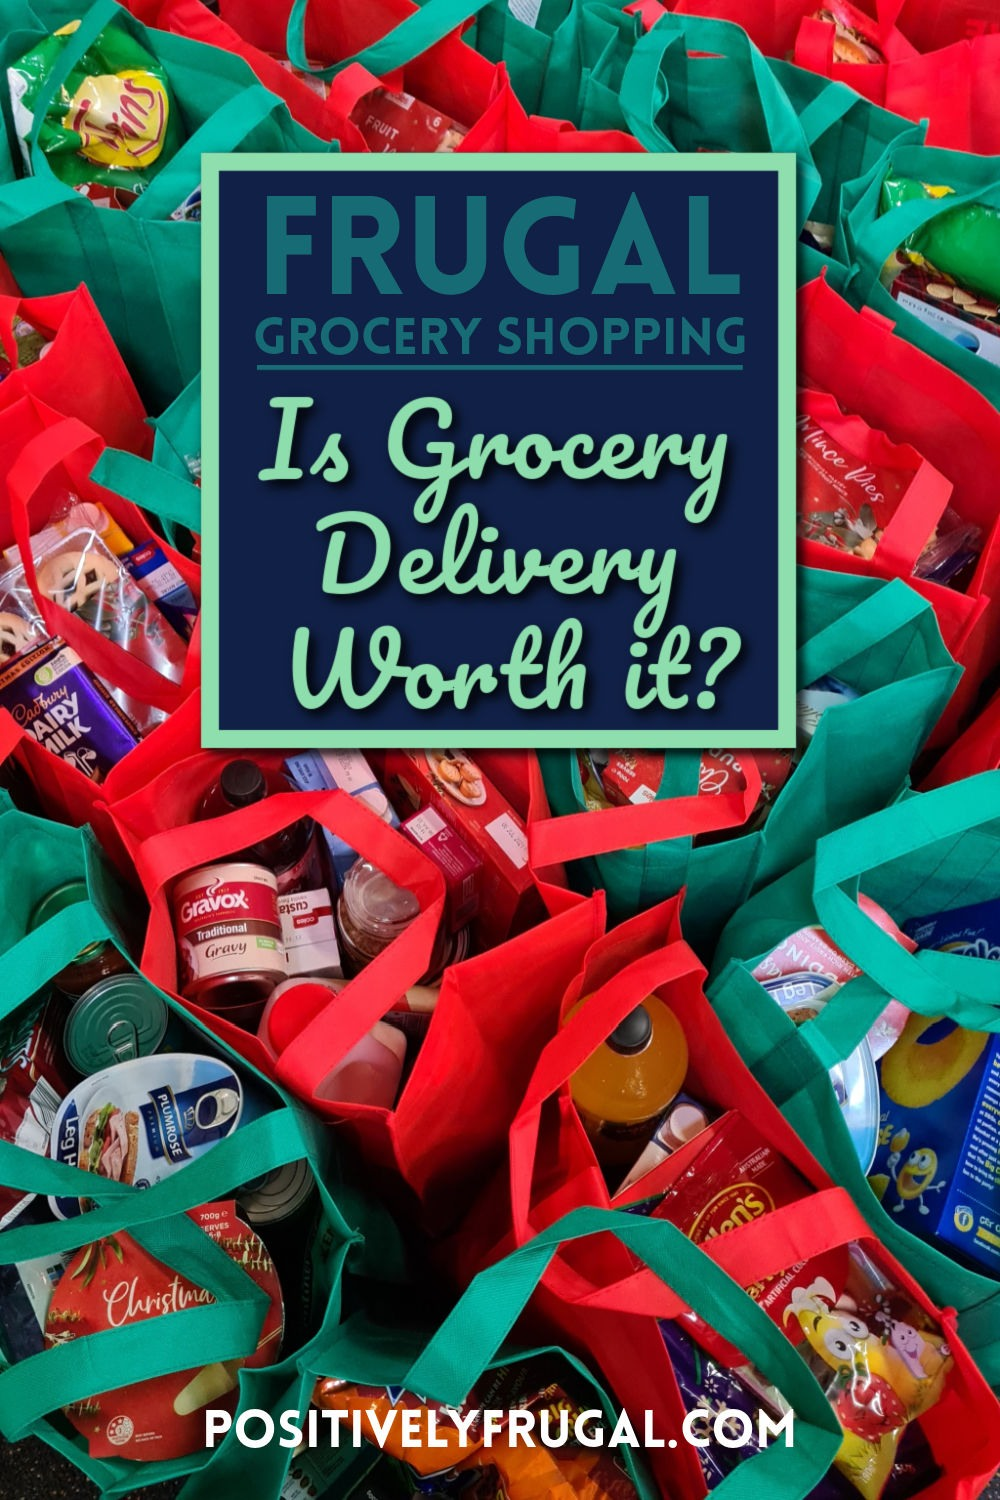 Frugal Grocery Shopping Delivery Worth It by PositivelyFrugal.com